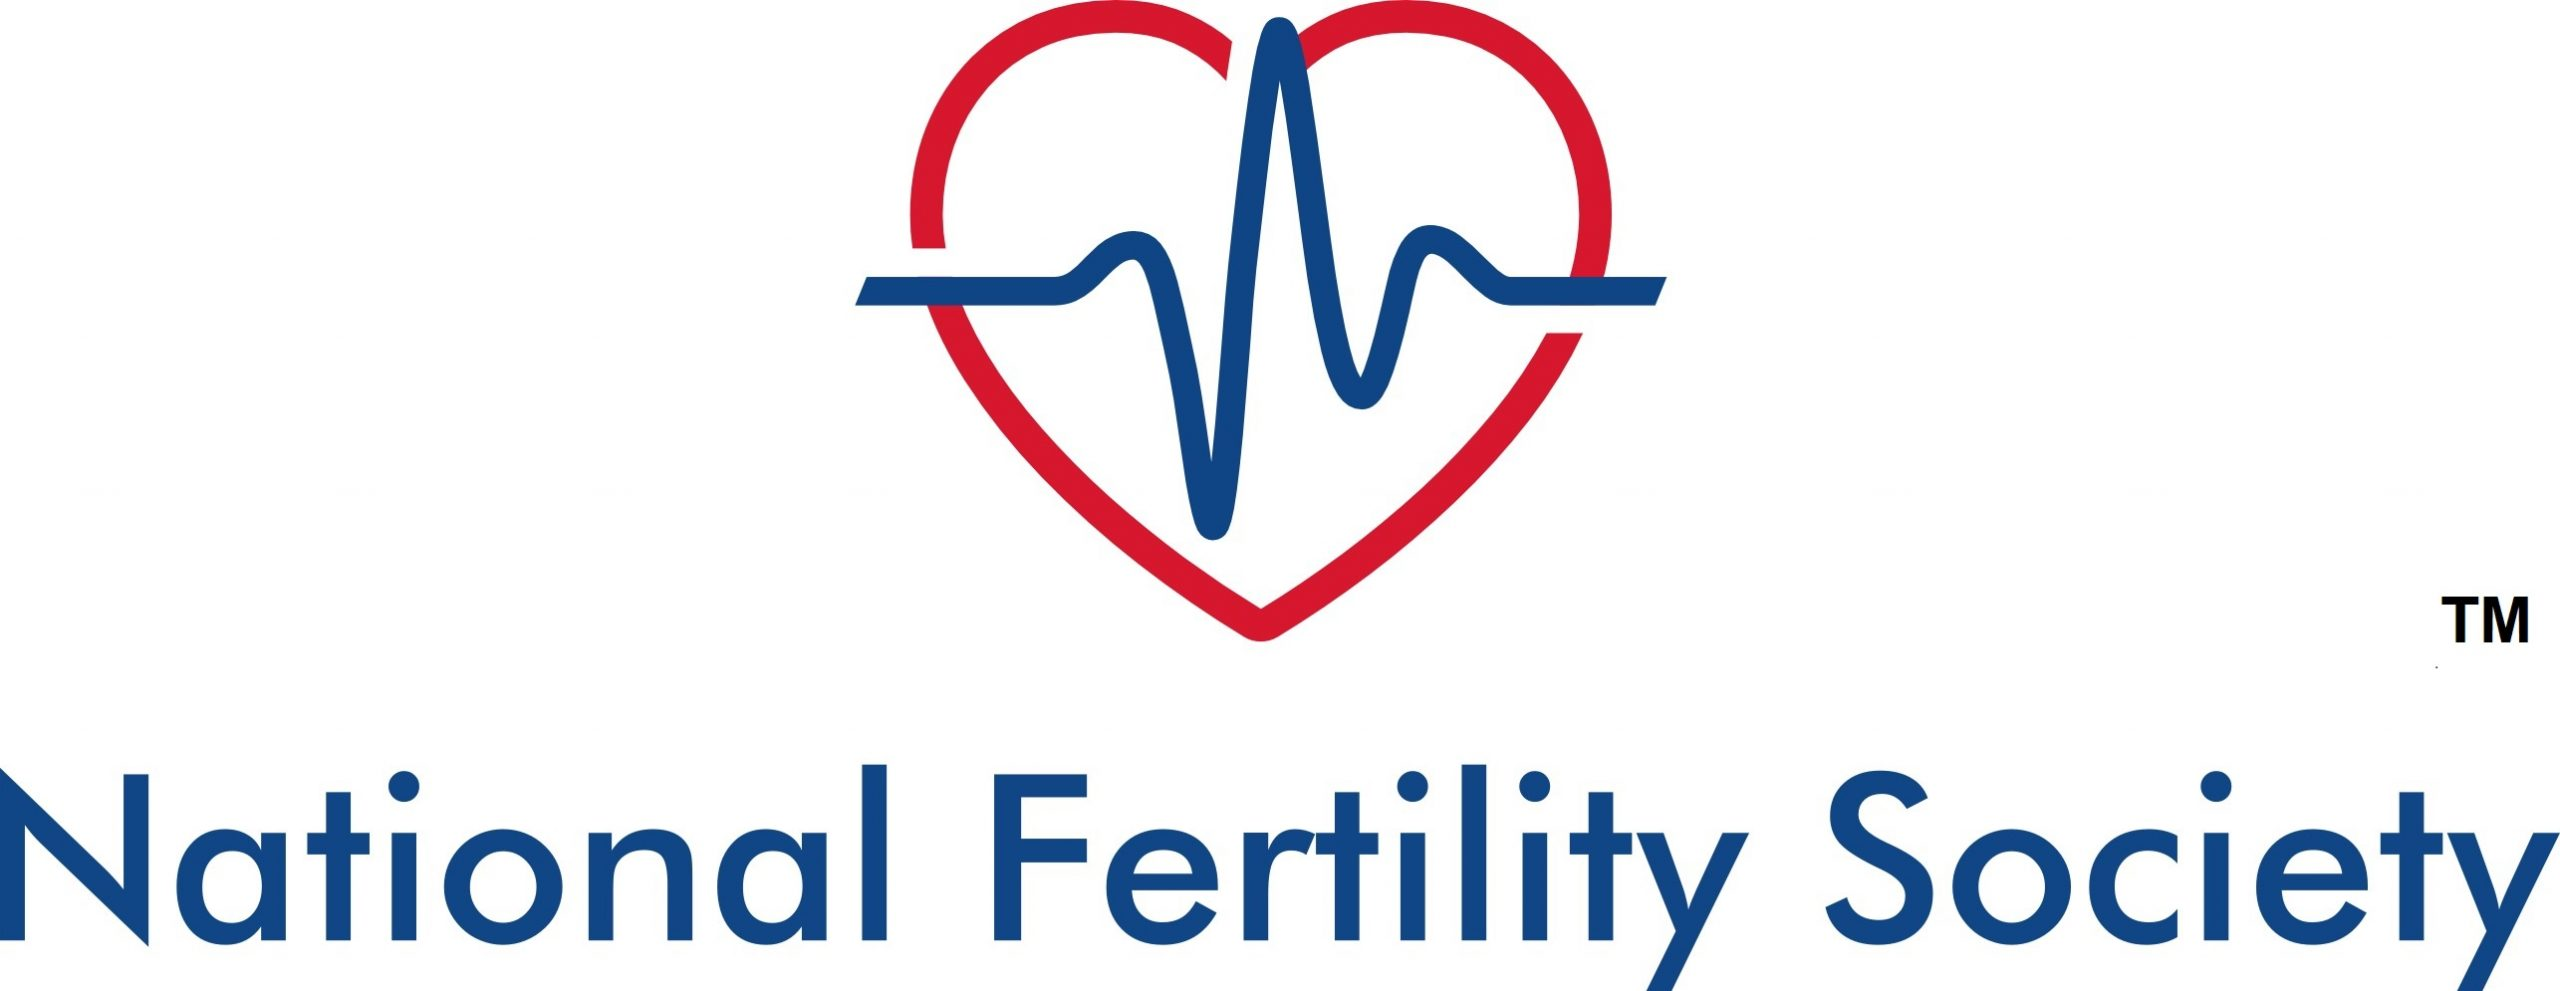 National Fertility Society